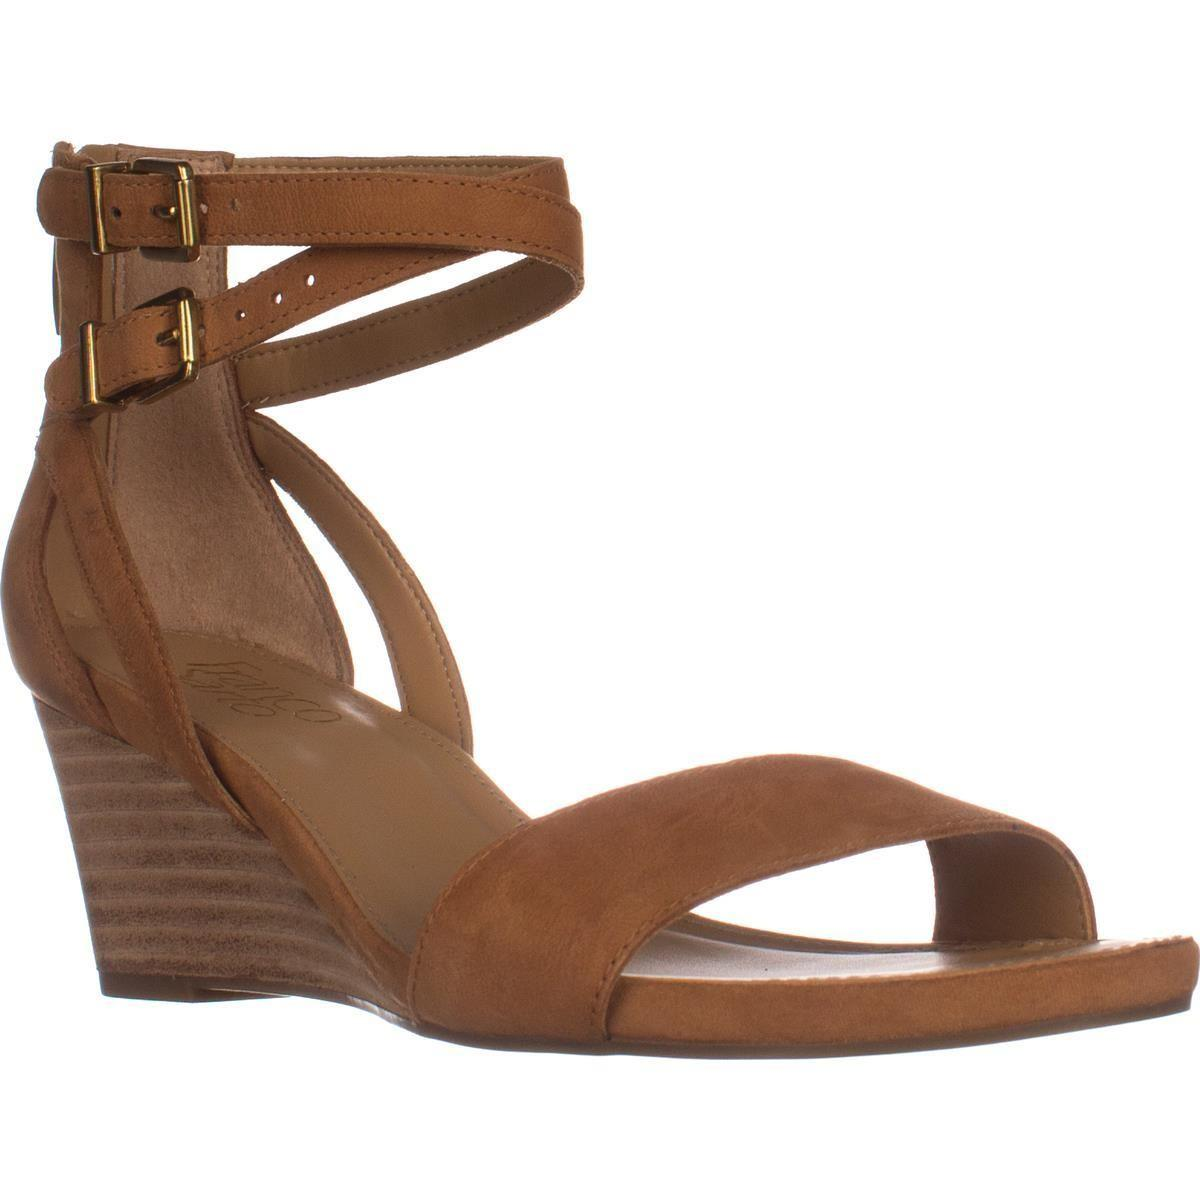 Ankle Strap Wedge Shoes Uk